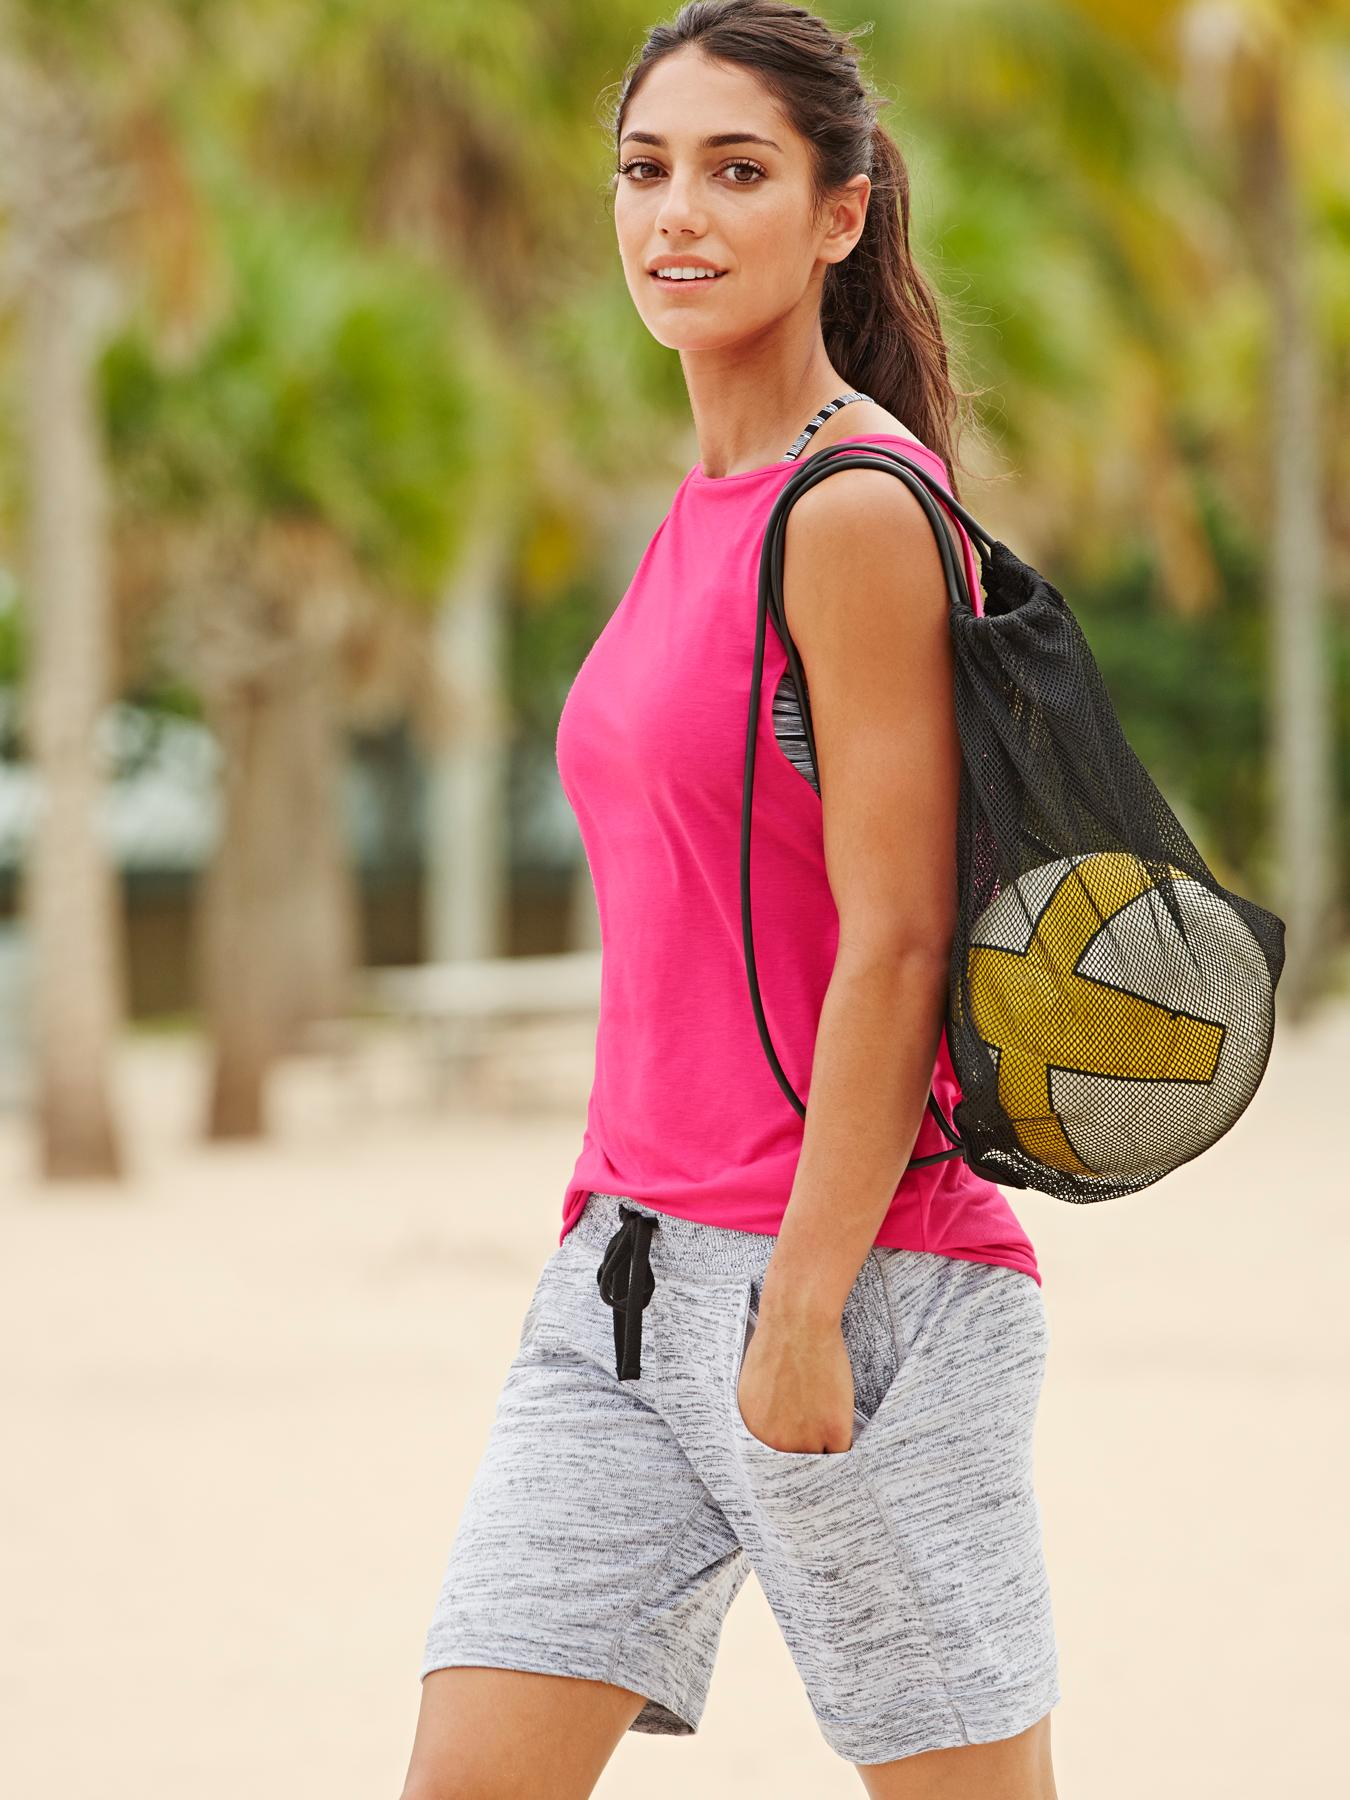 Allison Stokke Hot Pictures - Pole Vaulter Prove That She Sexiest Athlete